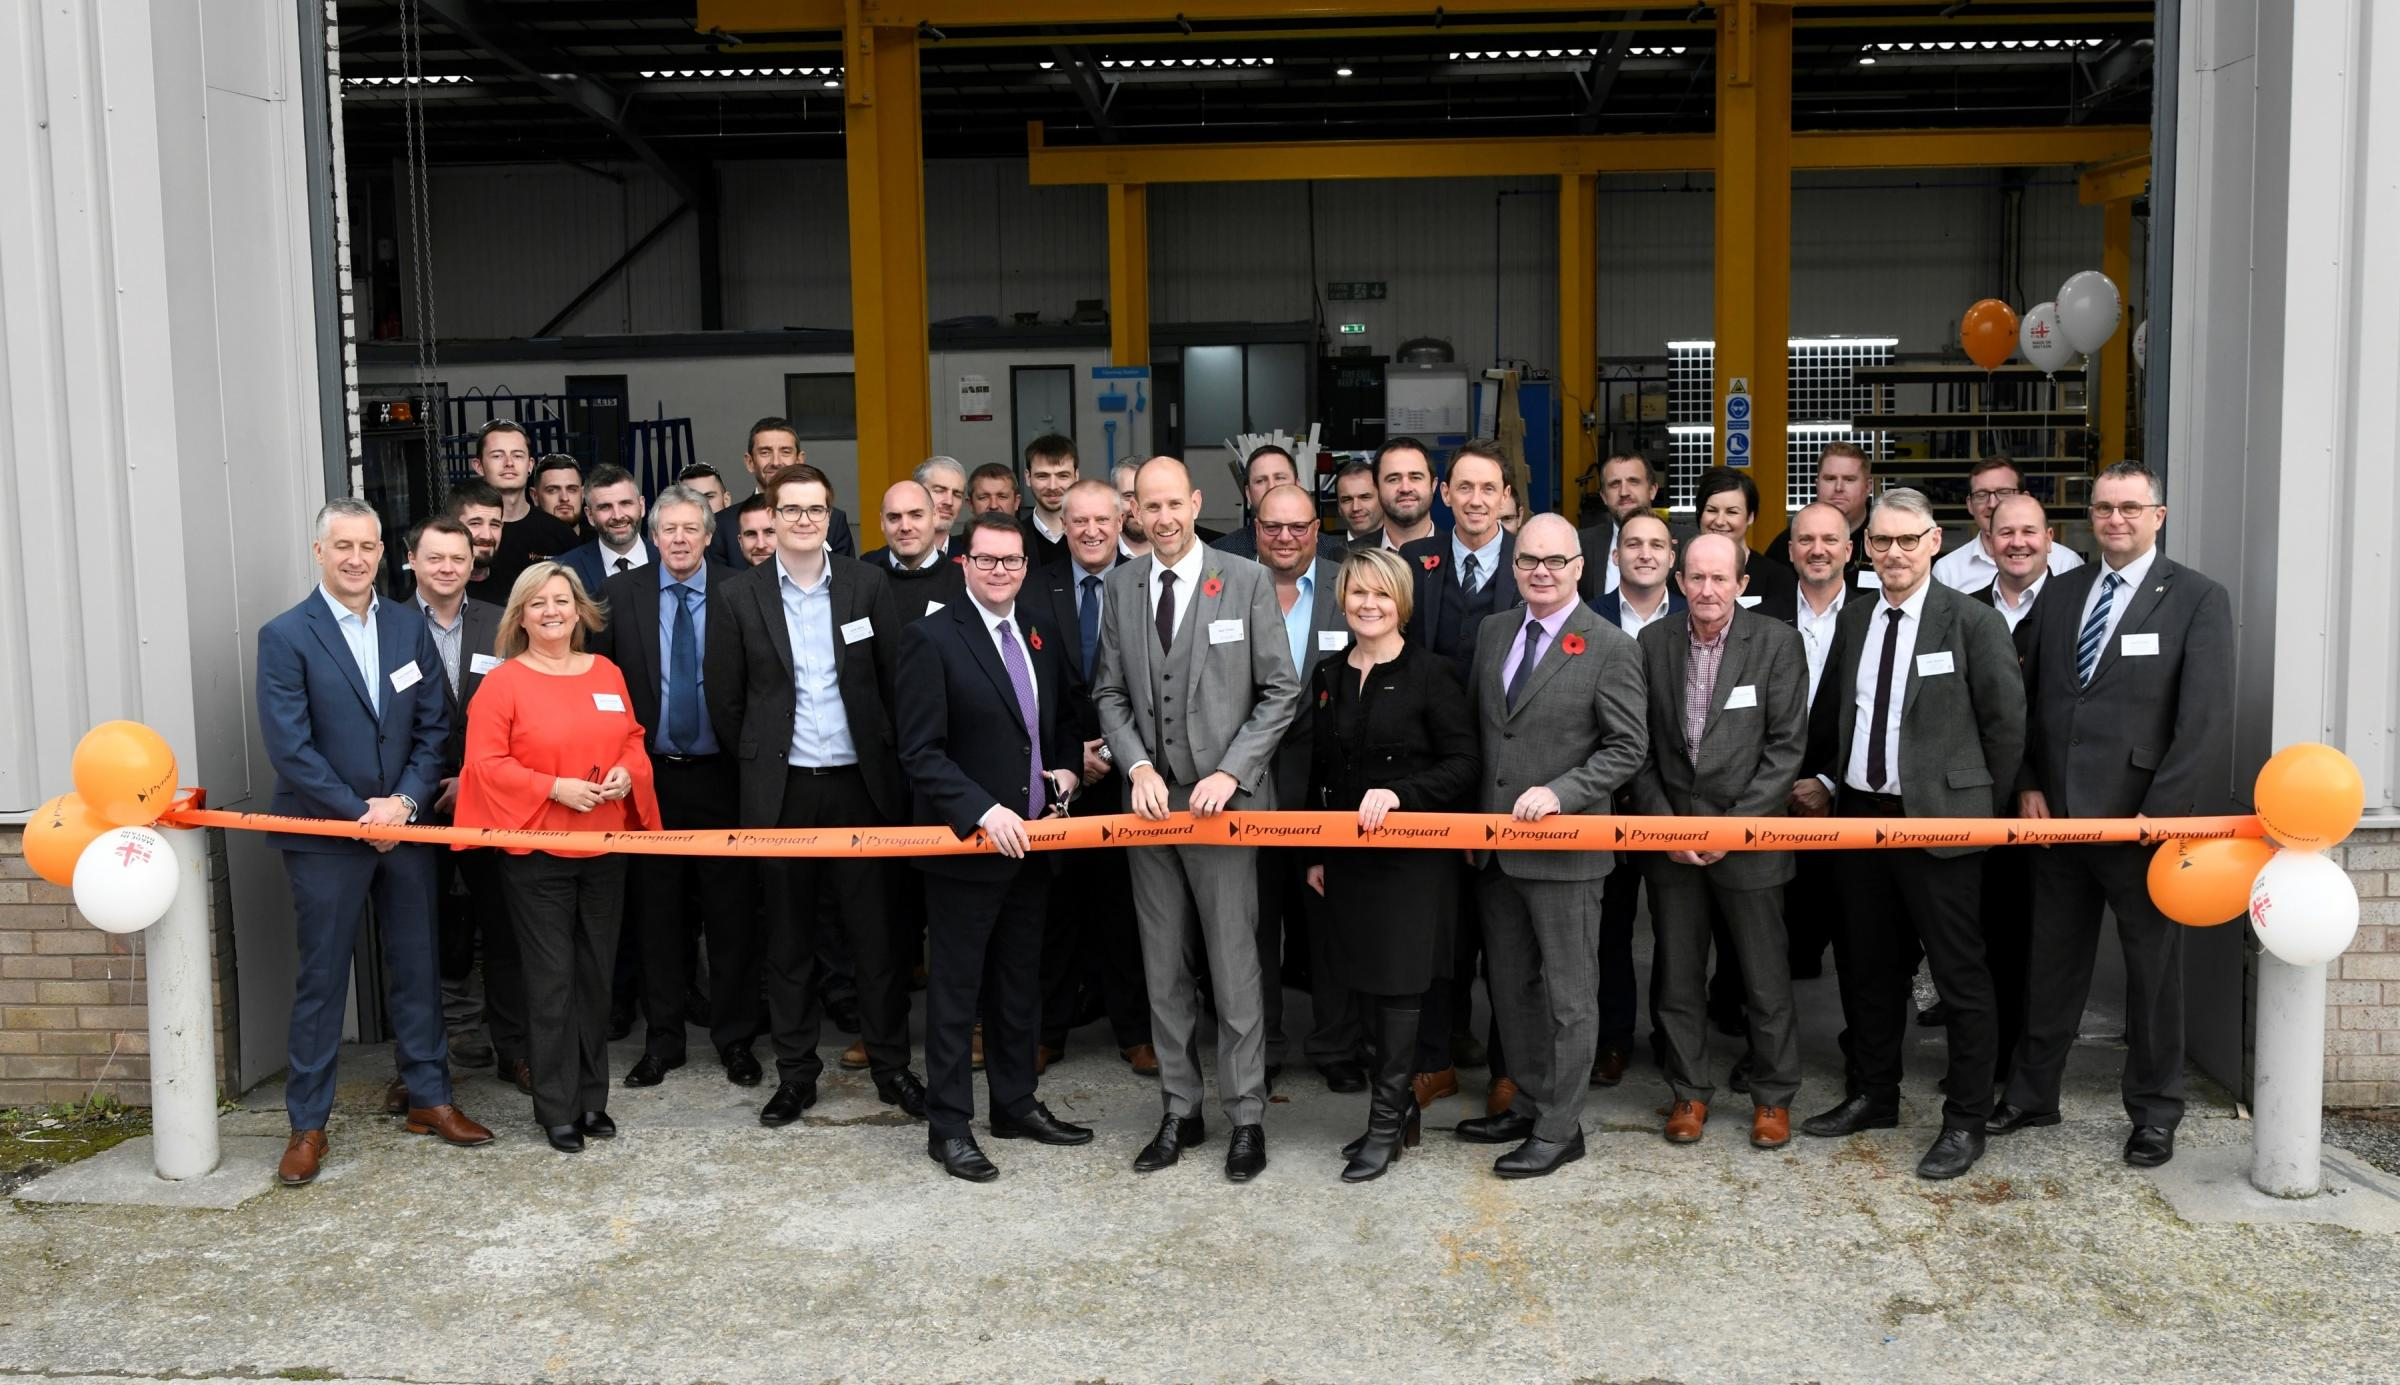 Conor McGinn MP opens Pyroguard's new manufacturing base